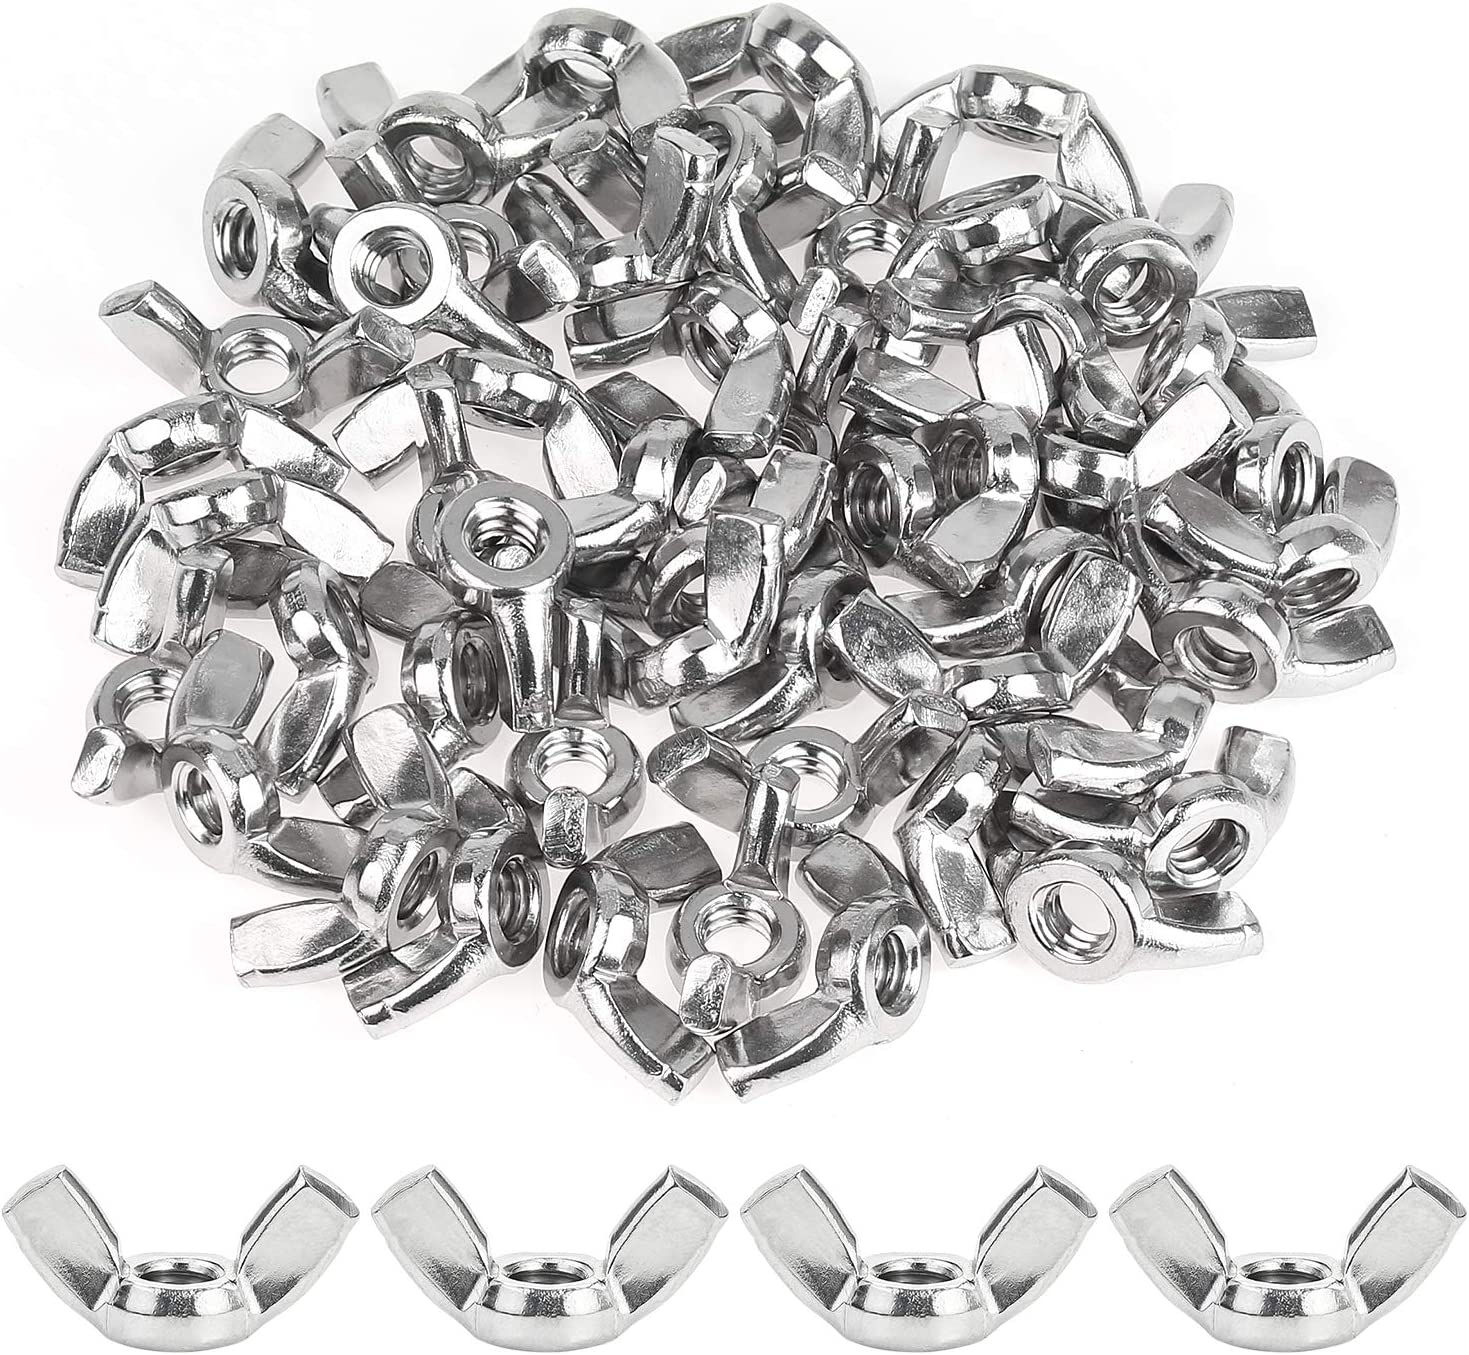 304 18-8 Wing Nut Stainless Steel Powlankou 50 Pieces 1//4-20 Stainless Wing Nut